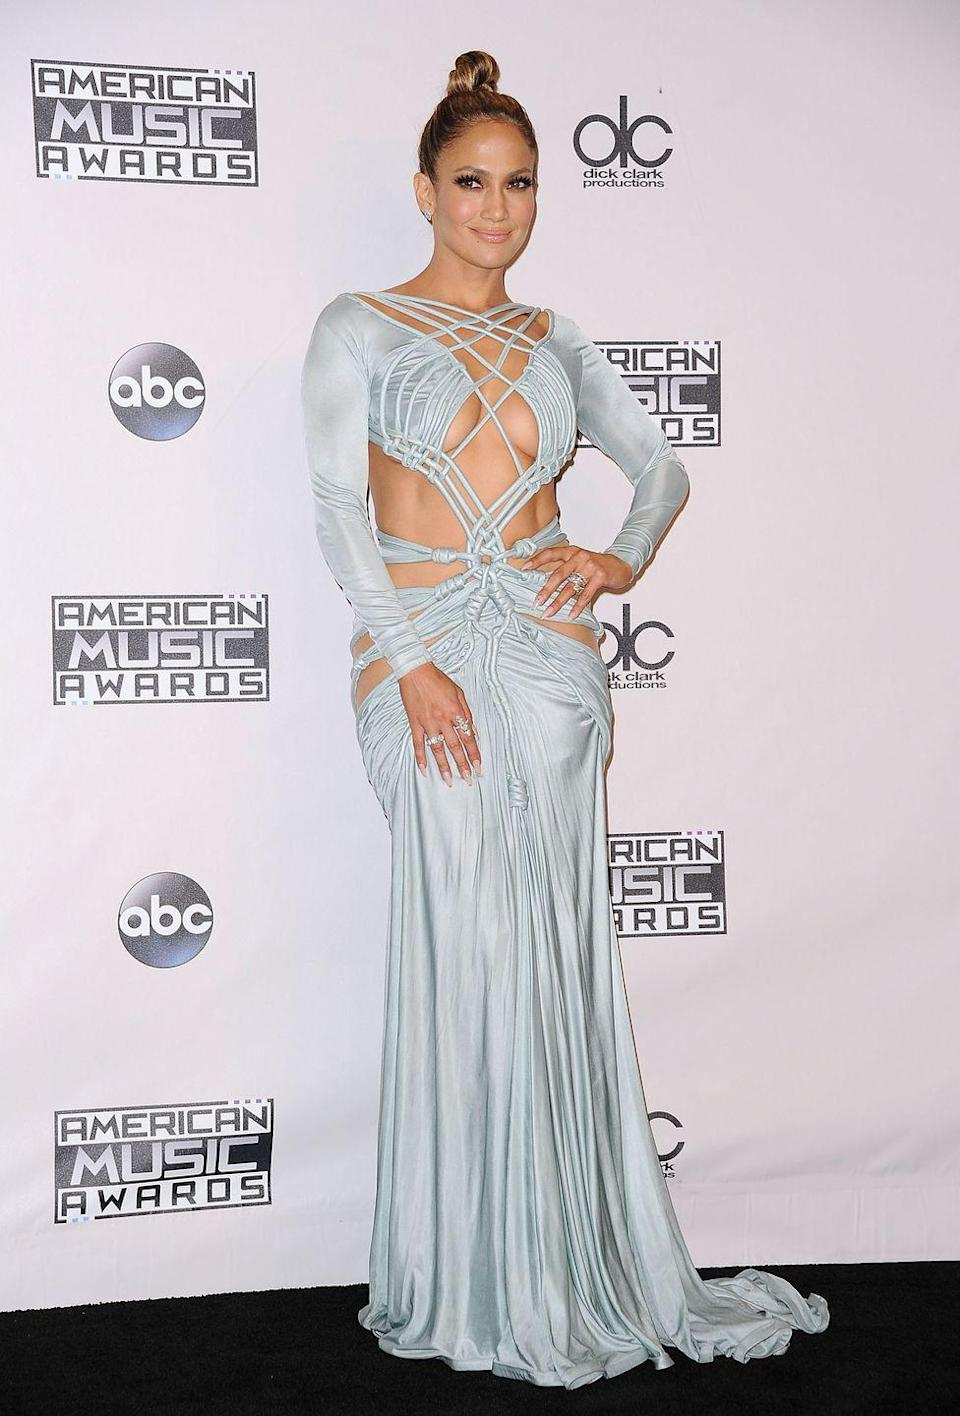 "<p>J.Lo attends the 2015 AMAs in this strappy blue gown, statement rings, and high bun. Also, let's not forget she lit-er-a-lly had <a href=""https://www.cosmopolitan.com/entertainment/celebs/news/a49700/jlo-2015-amas-outfits/"" rel=""nofollow noopener"" target=""_blank"" data-ylk=""slk:10 outfit changes"" class=""link rapid-noclick-resp"">10 outfit changes</a> that night, mmmkay? Your fave could never. </p>"